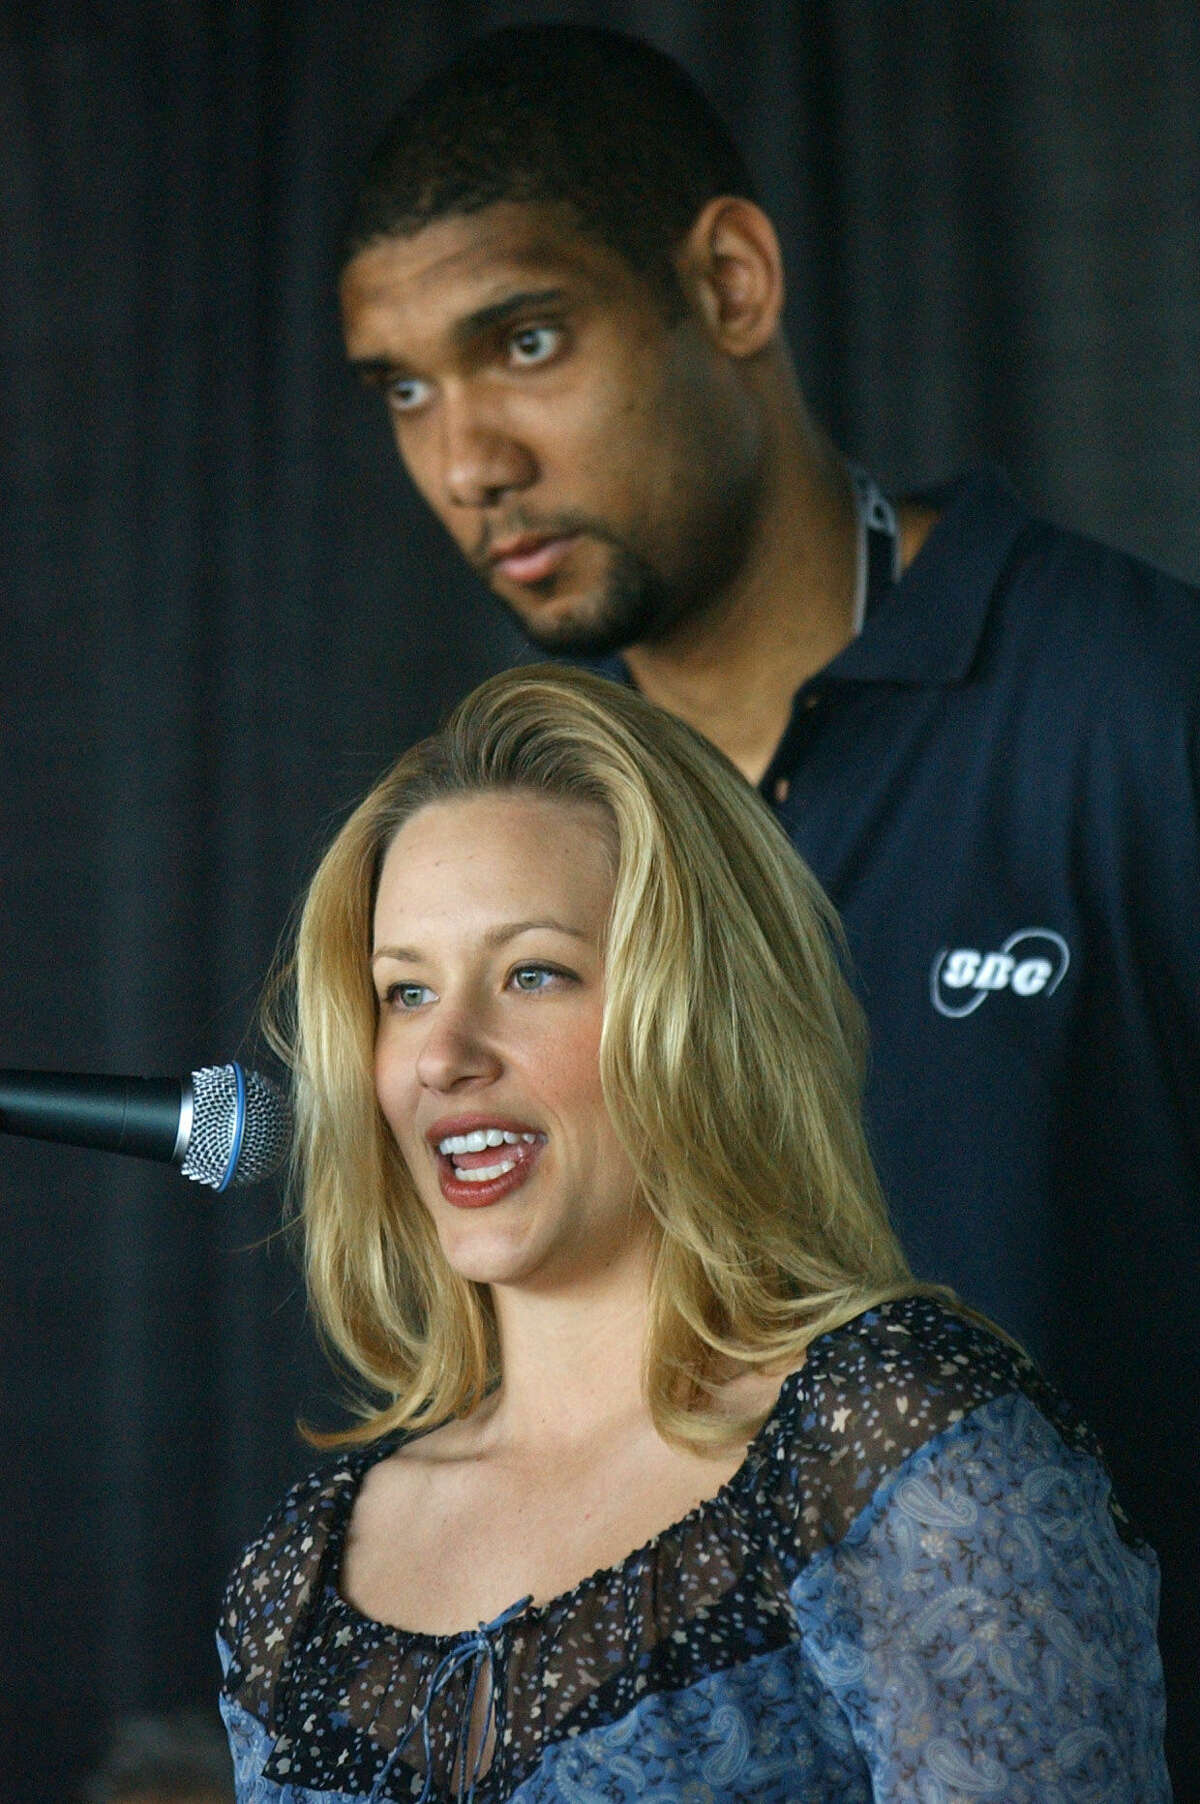 Tim Duncan and Amy Duncan had been college sweethearts at Wake Forest, where he was on the basketball team and she was a cheerleader. They married in 2001.